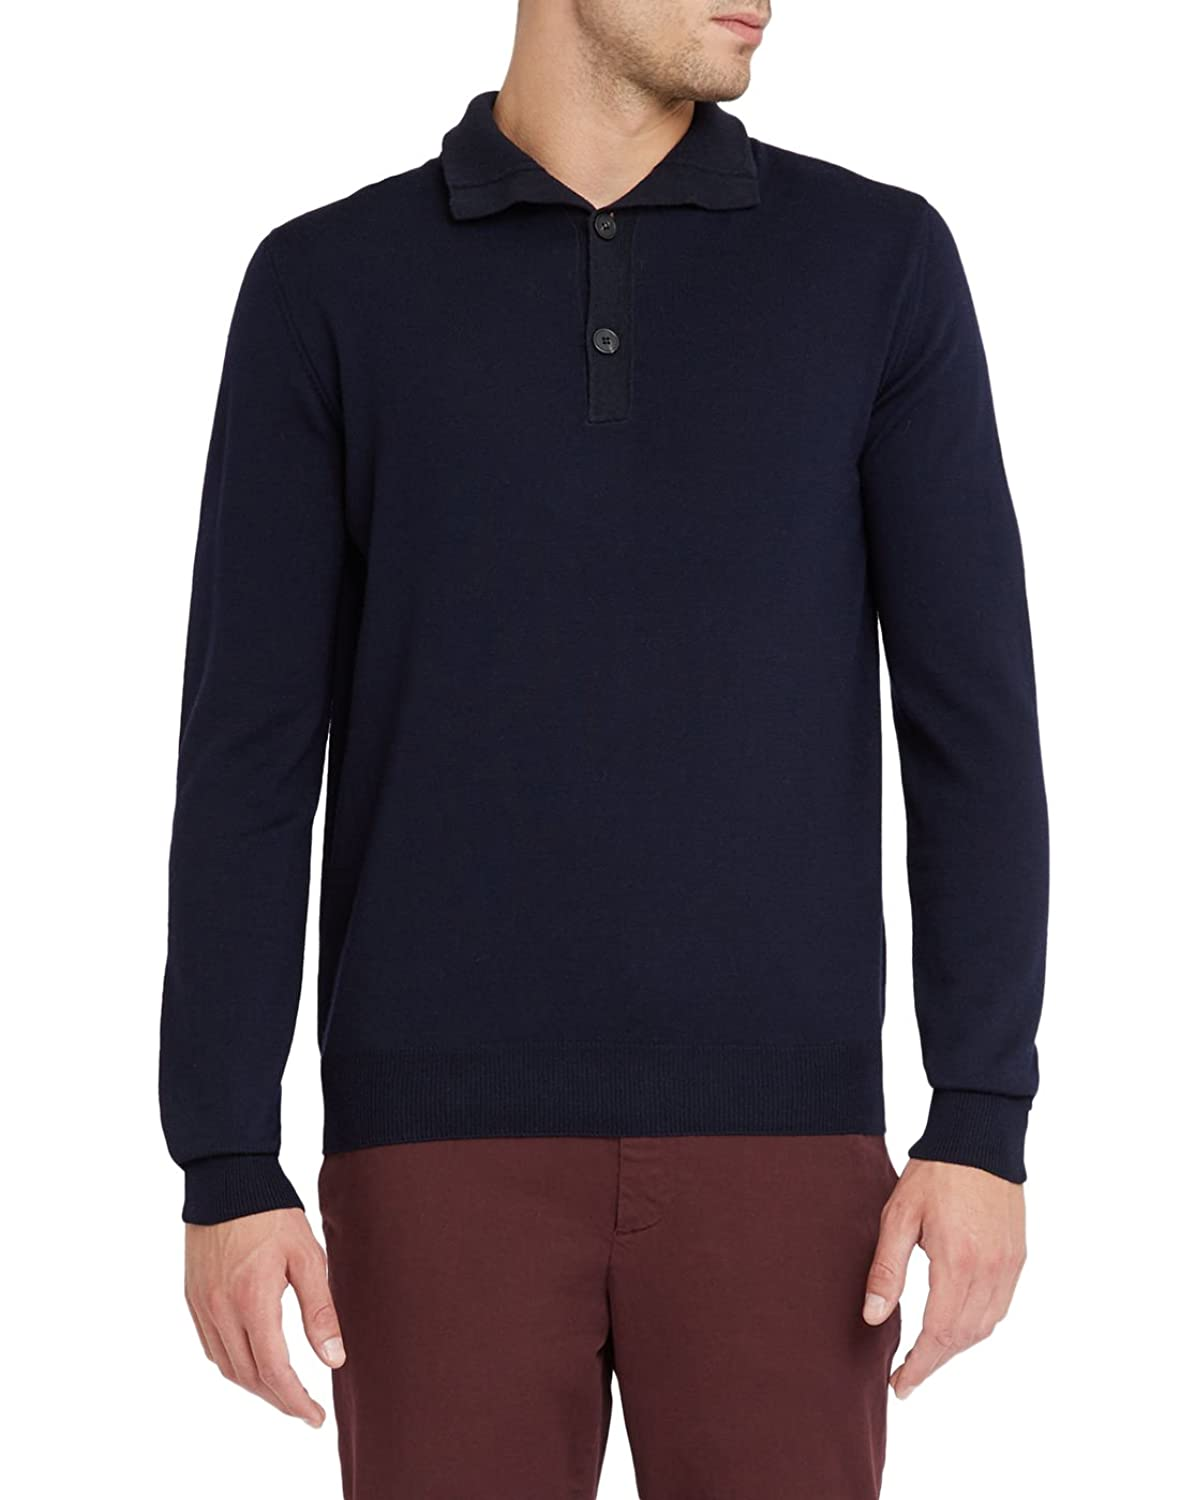 EDITIONS M.R - Zip-neck Sweaters - Men - Navy Merino Wool Contrasting Mock Polo-Neck Sweater for men